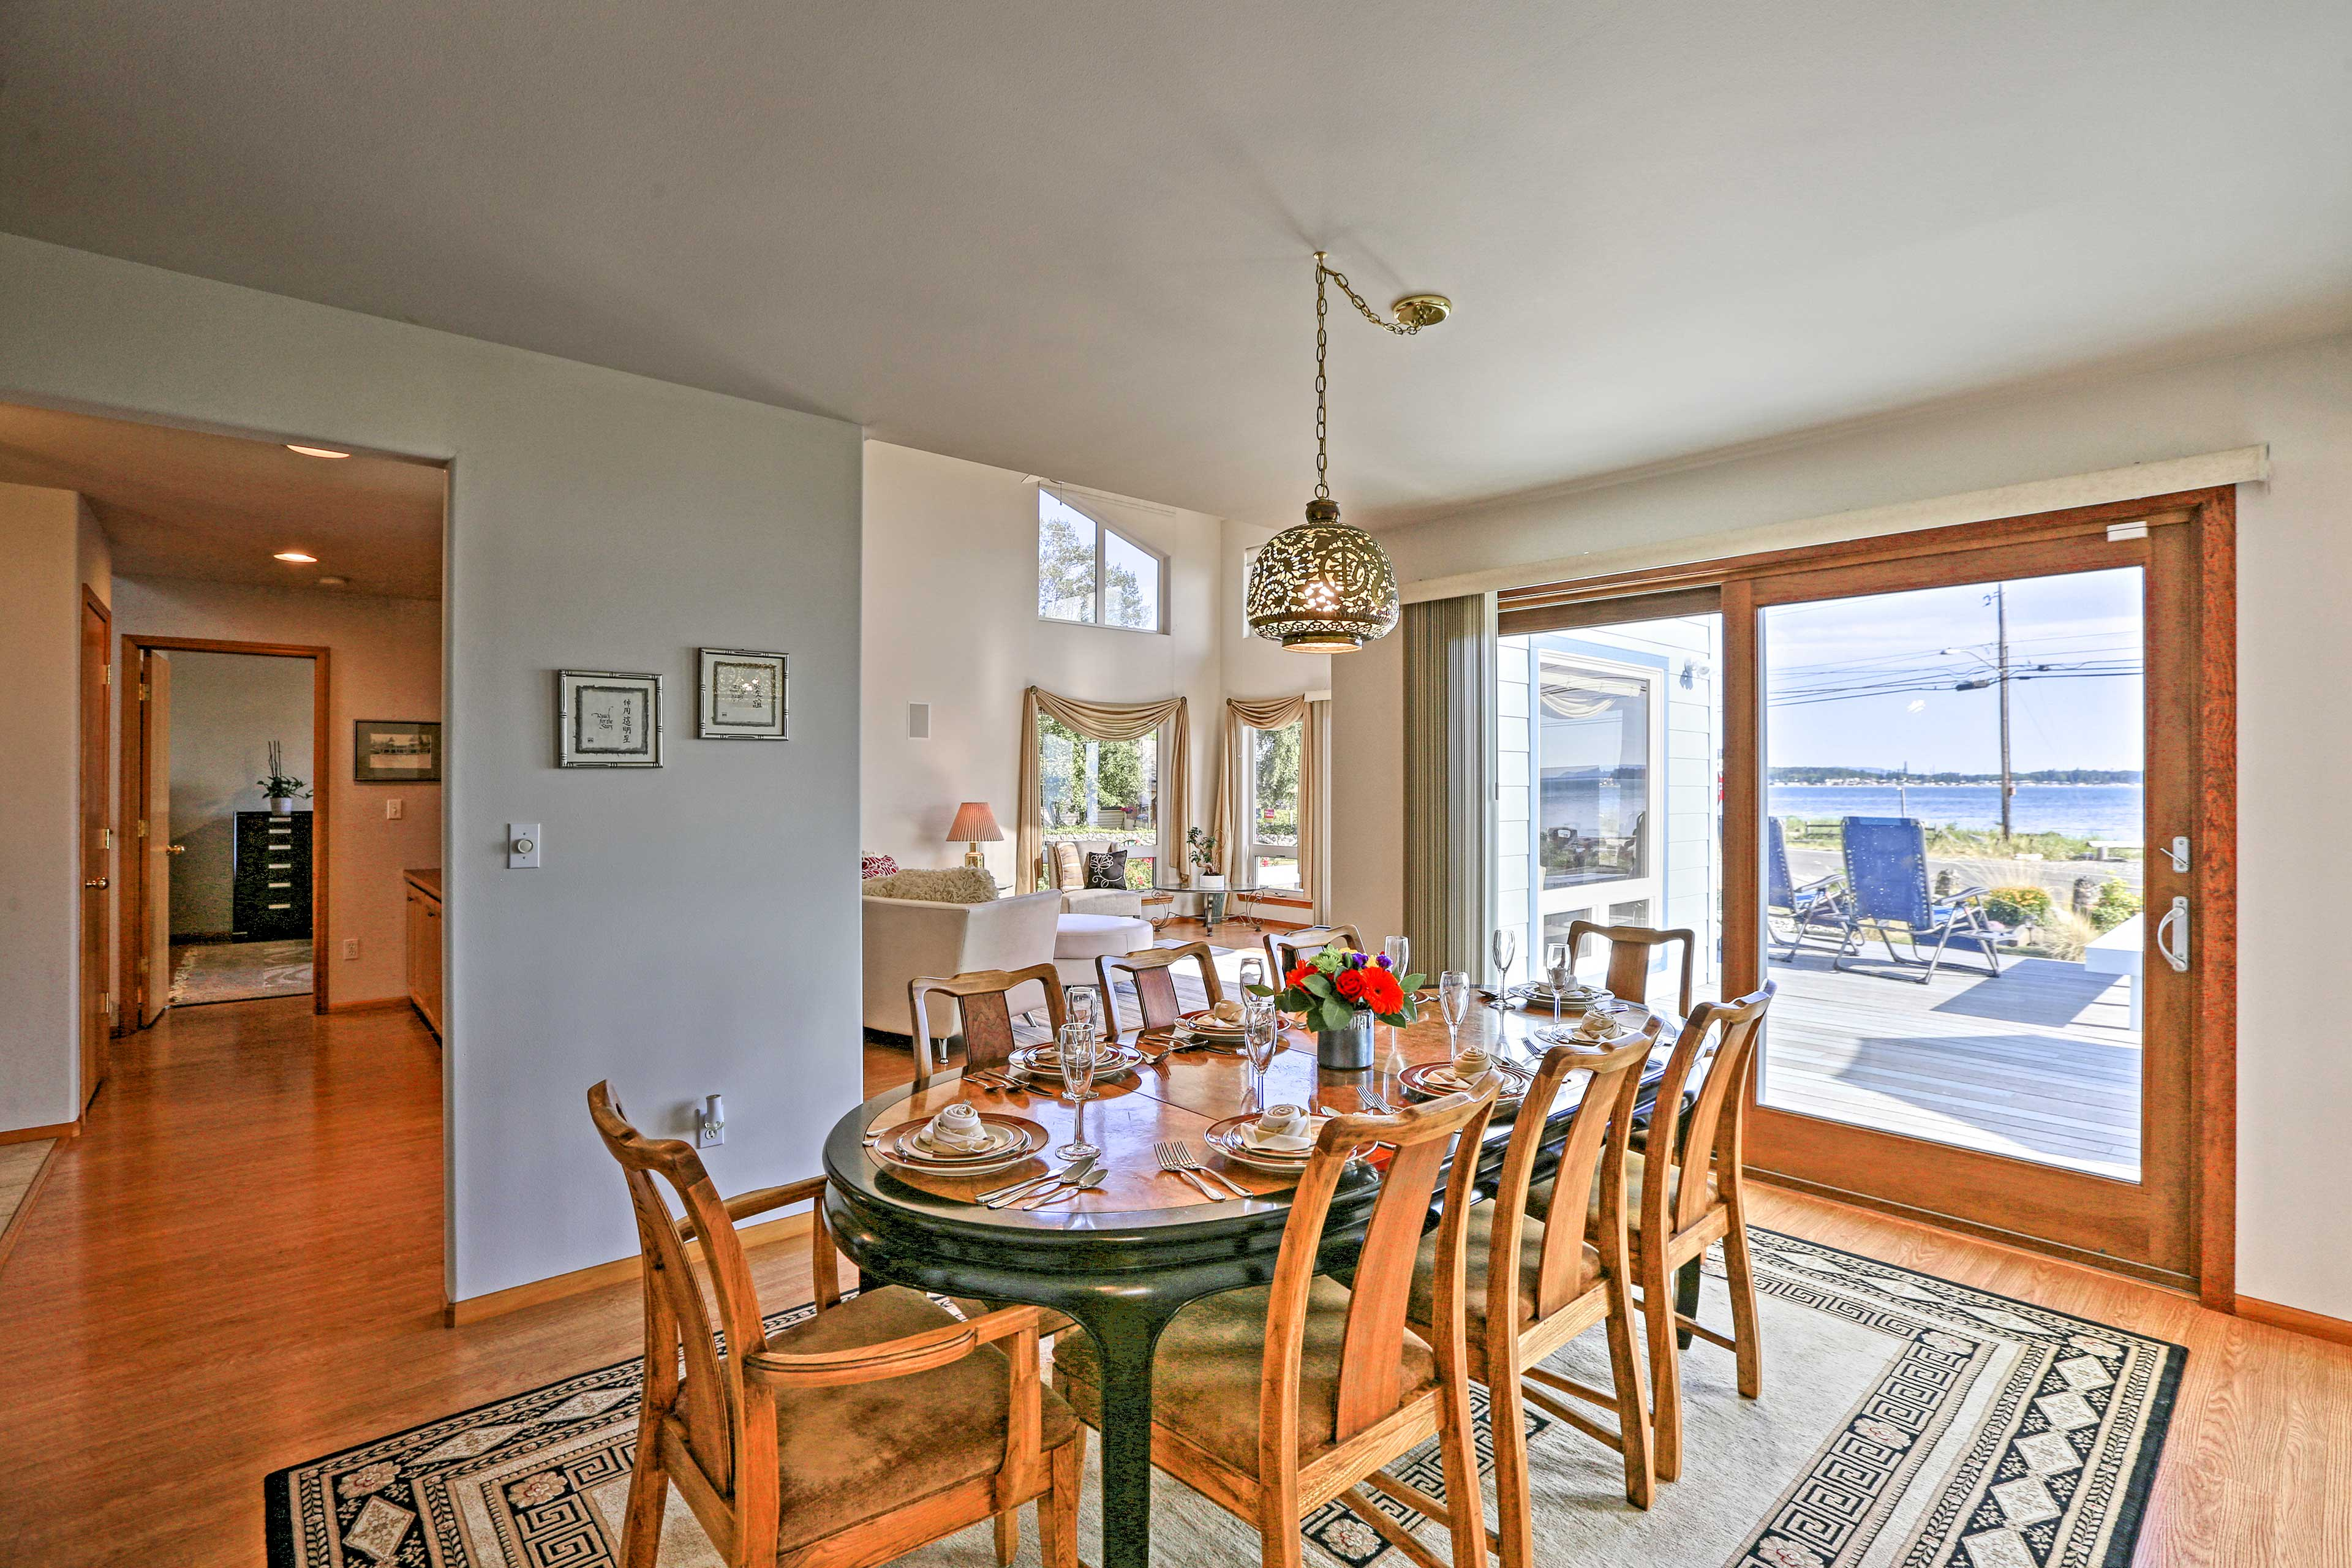 Enjoy a meal at the 8-person dining table.